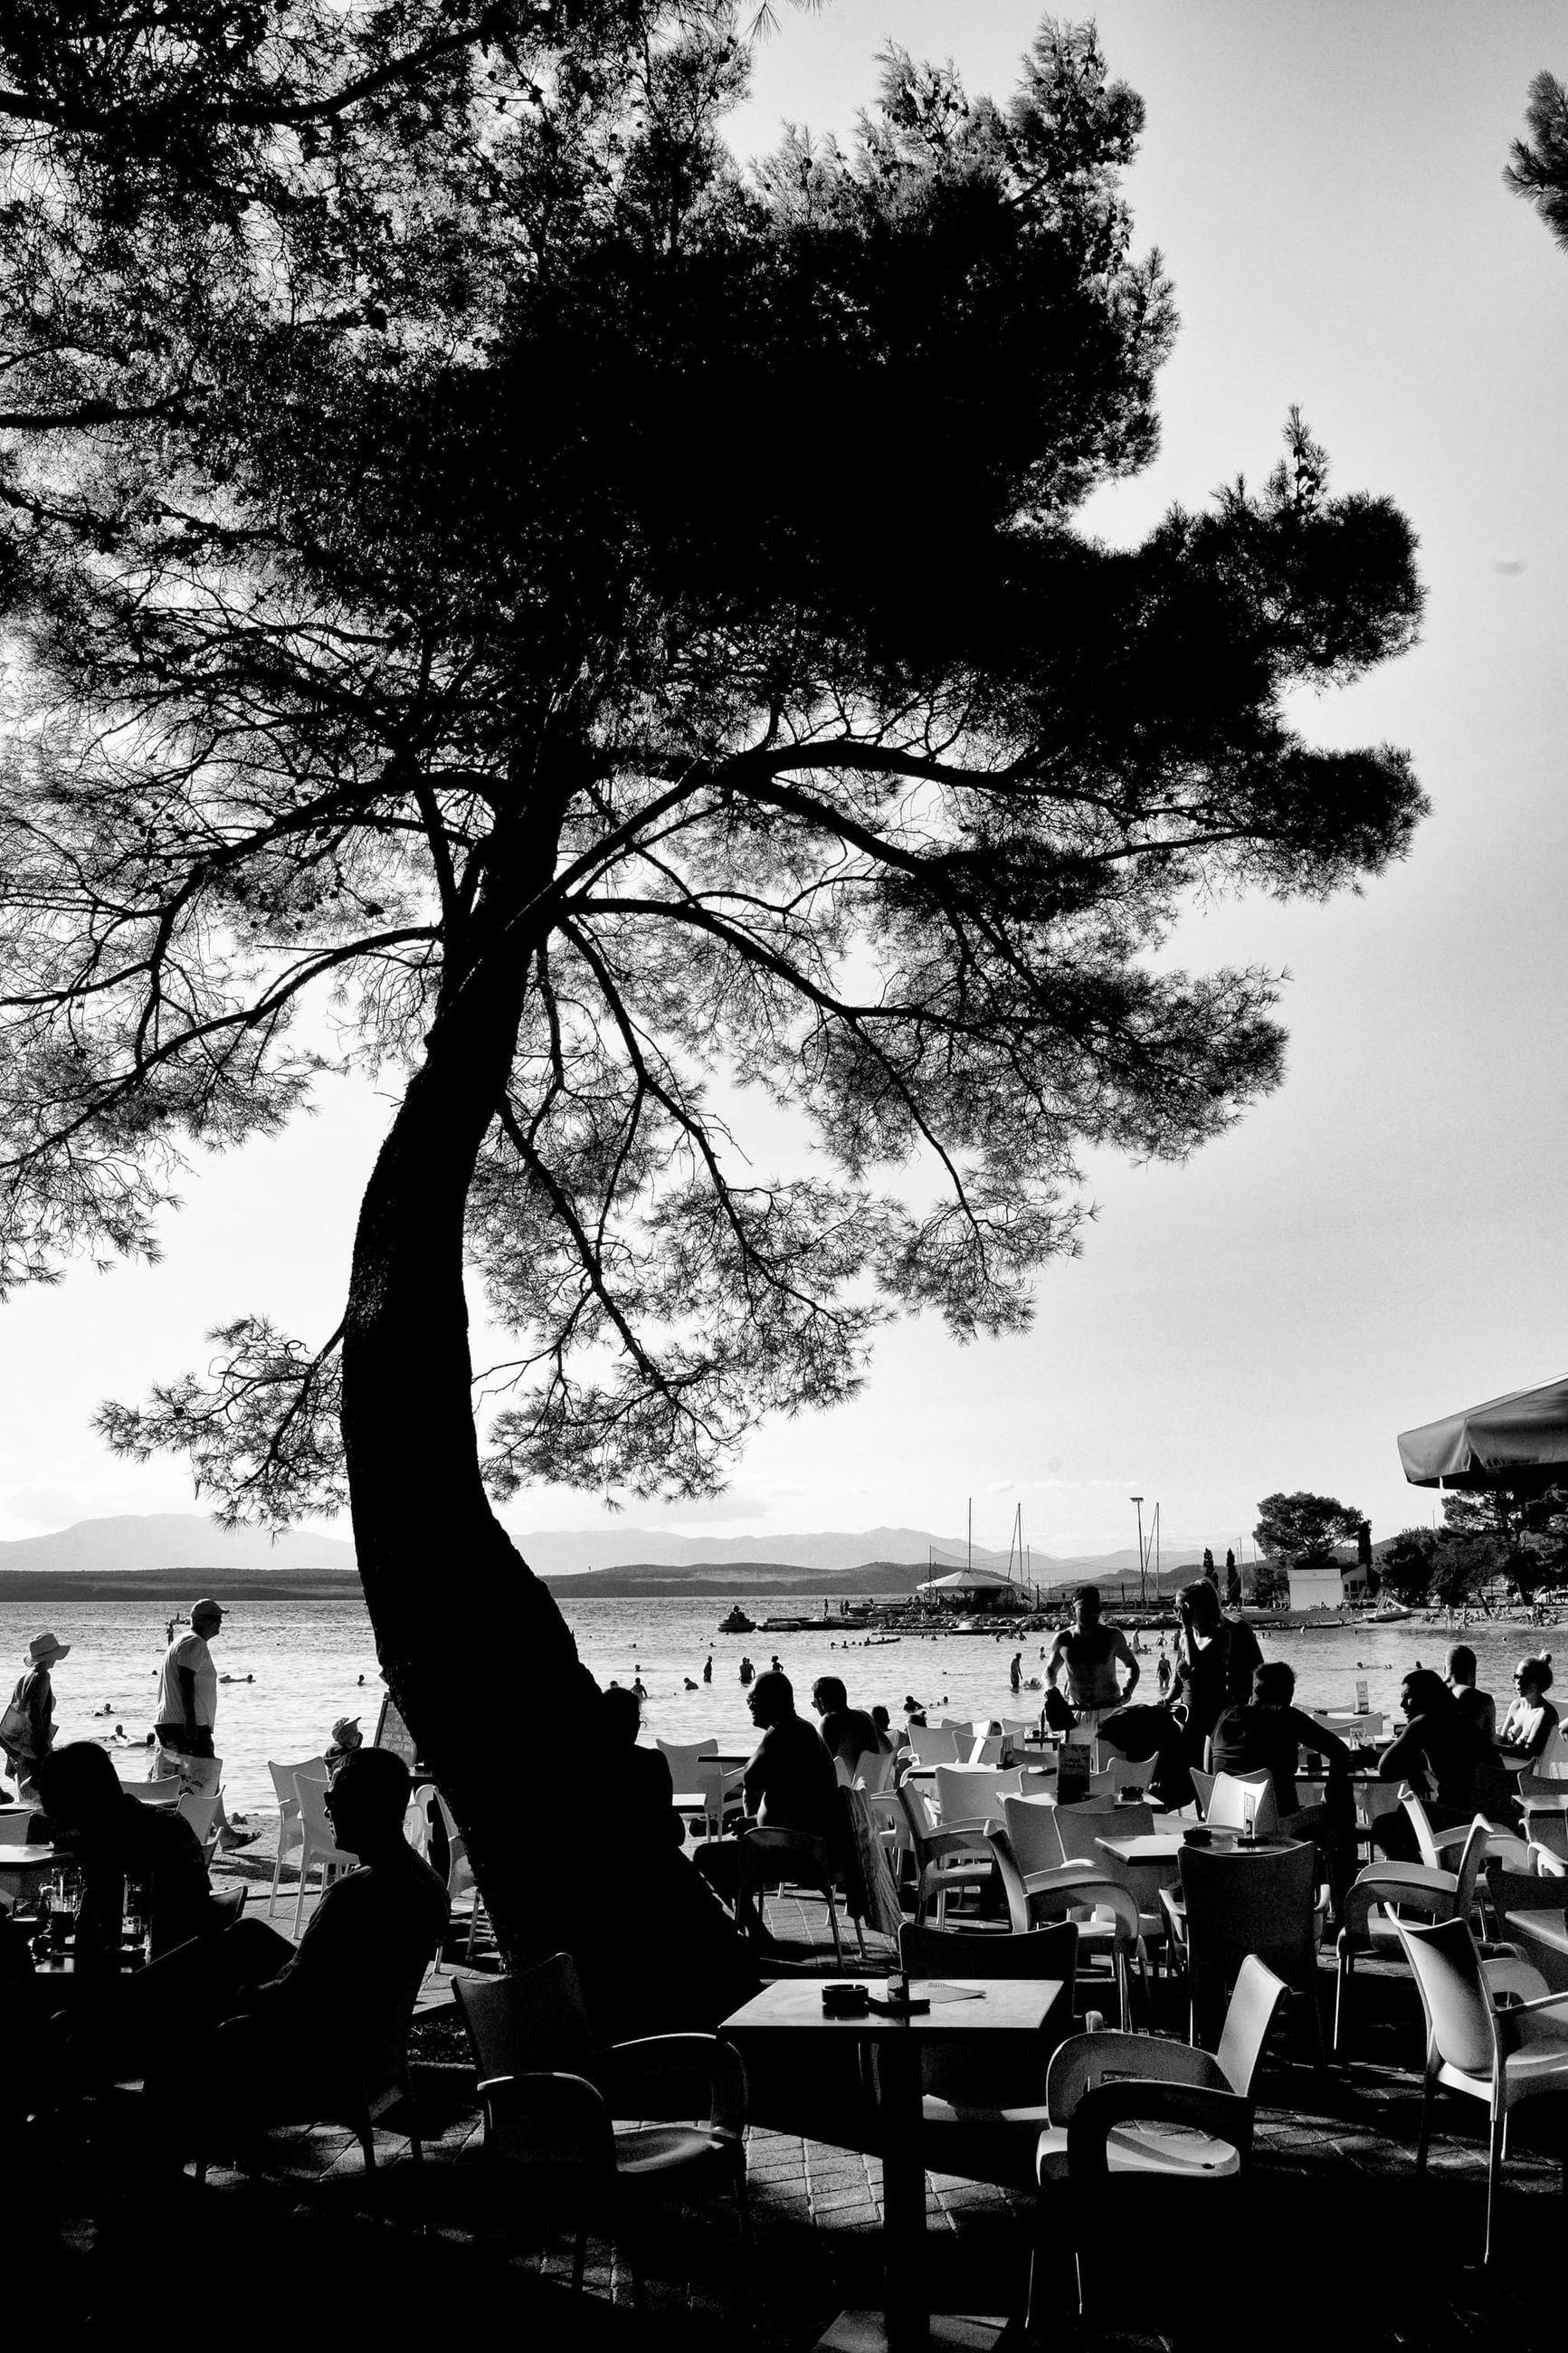 tree, black and white, group of people, monochrome photography, crowd, monochrome, plant, nature, sky, water, large group of people, men, leisure activity, women, sitting, lifestyles, adult, sea, seat, relaxation, silhouette, beach, outdoors, enjoyment, chair, table, black, day, land, person, togetherness